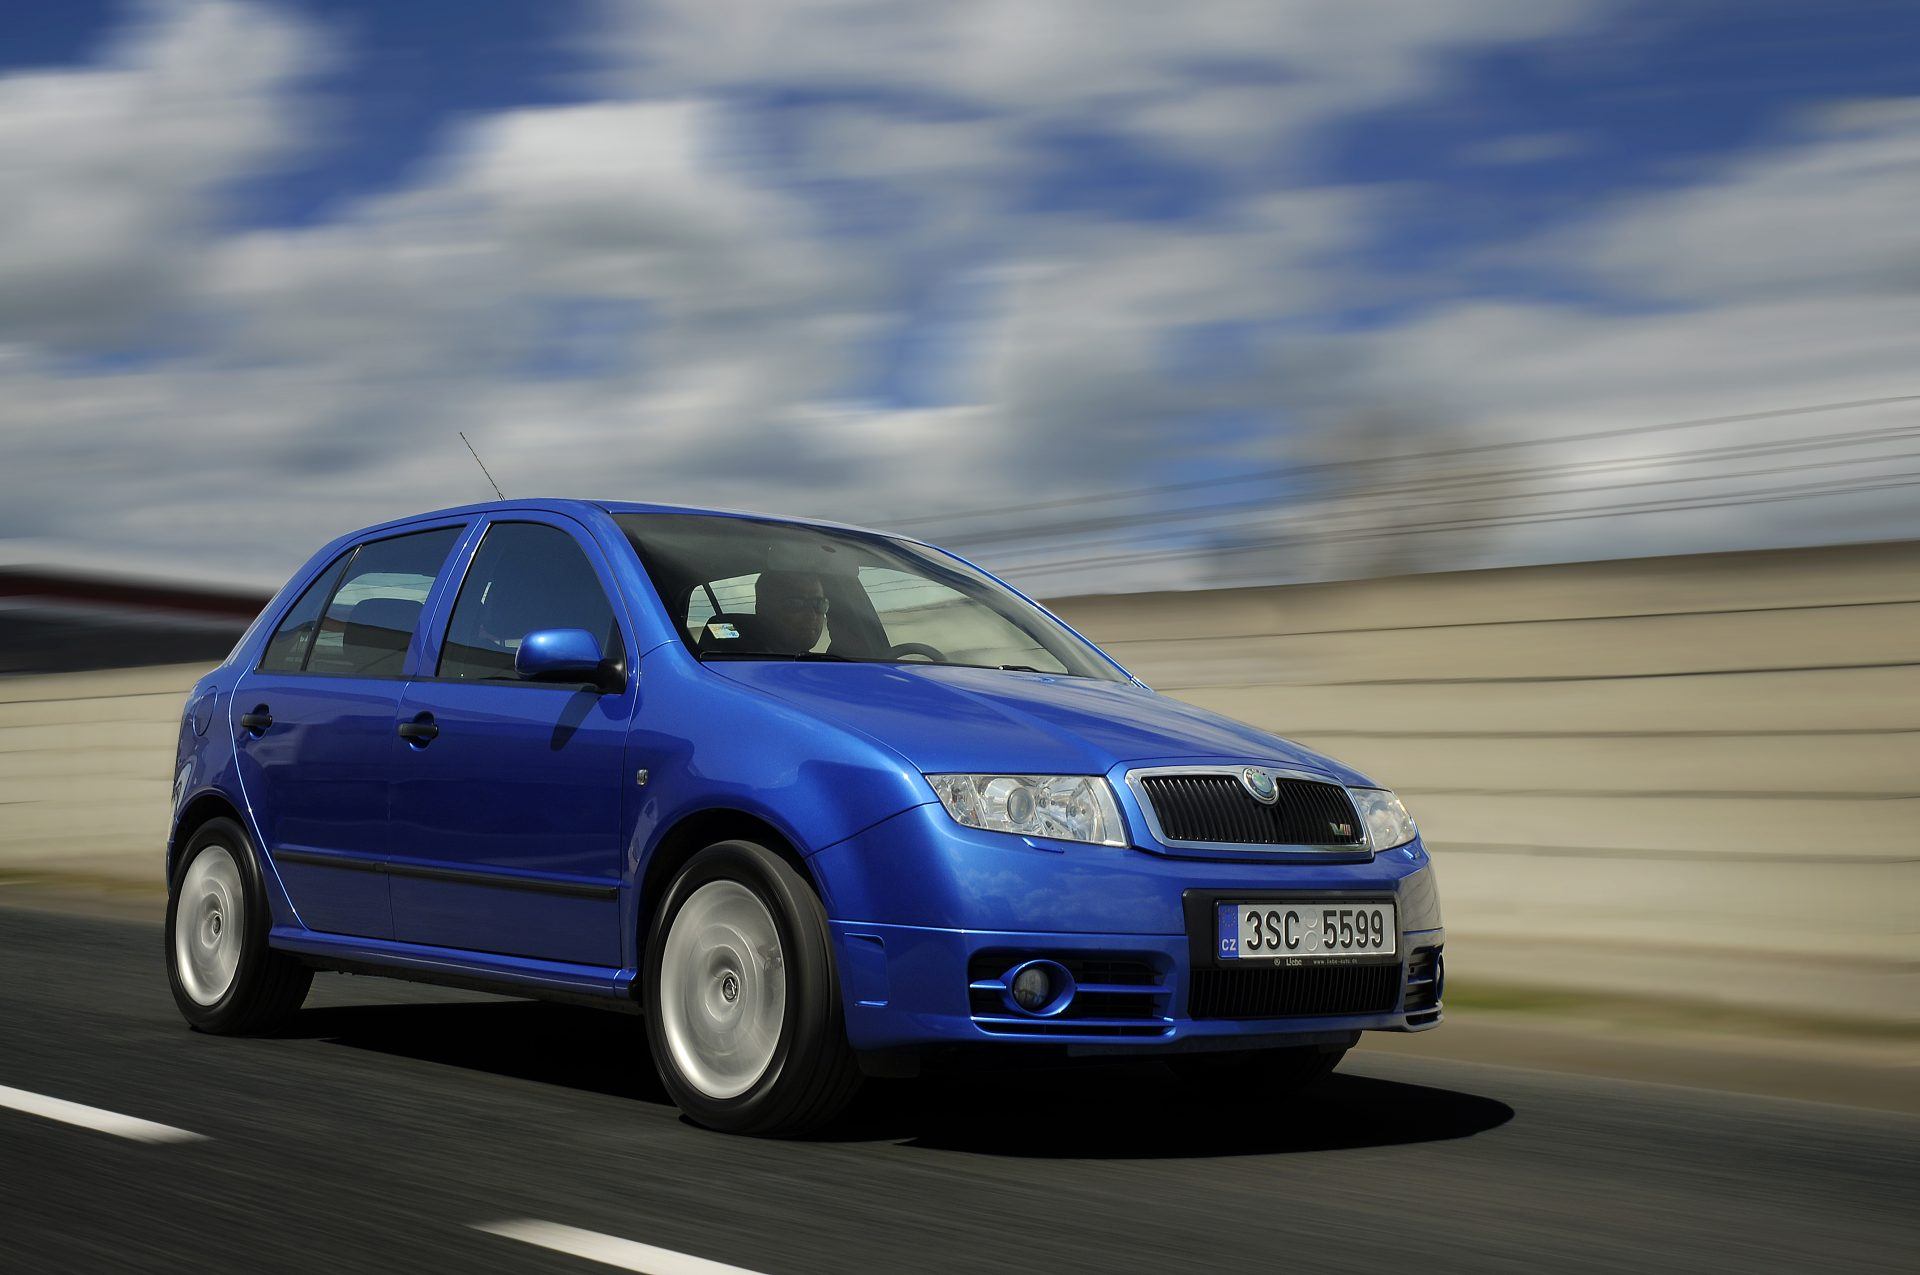 The Skoda Fabia vRS packed performance in an understated package